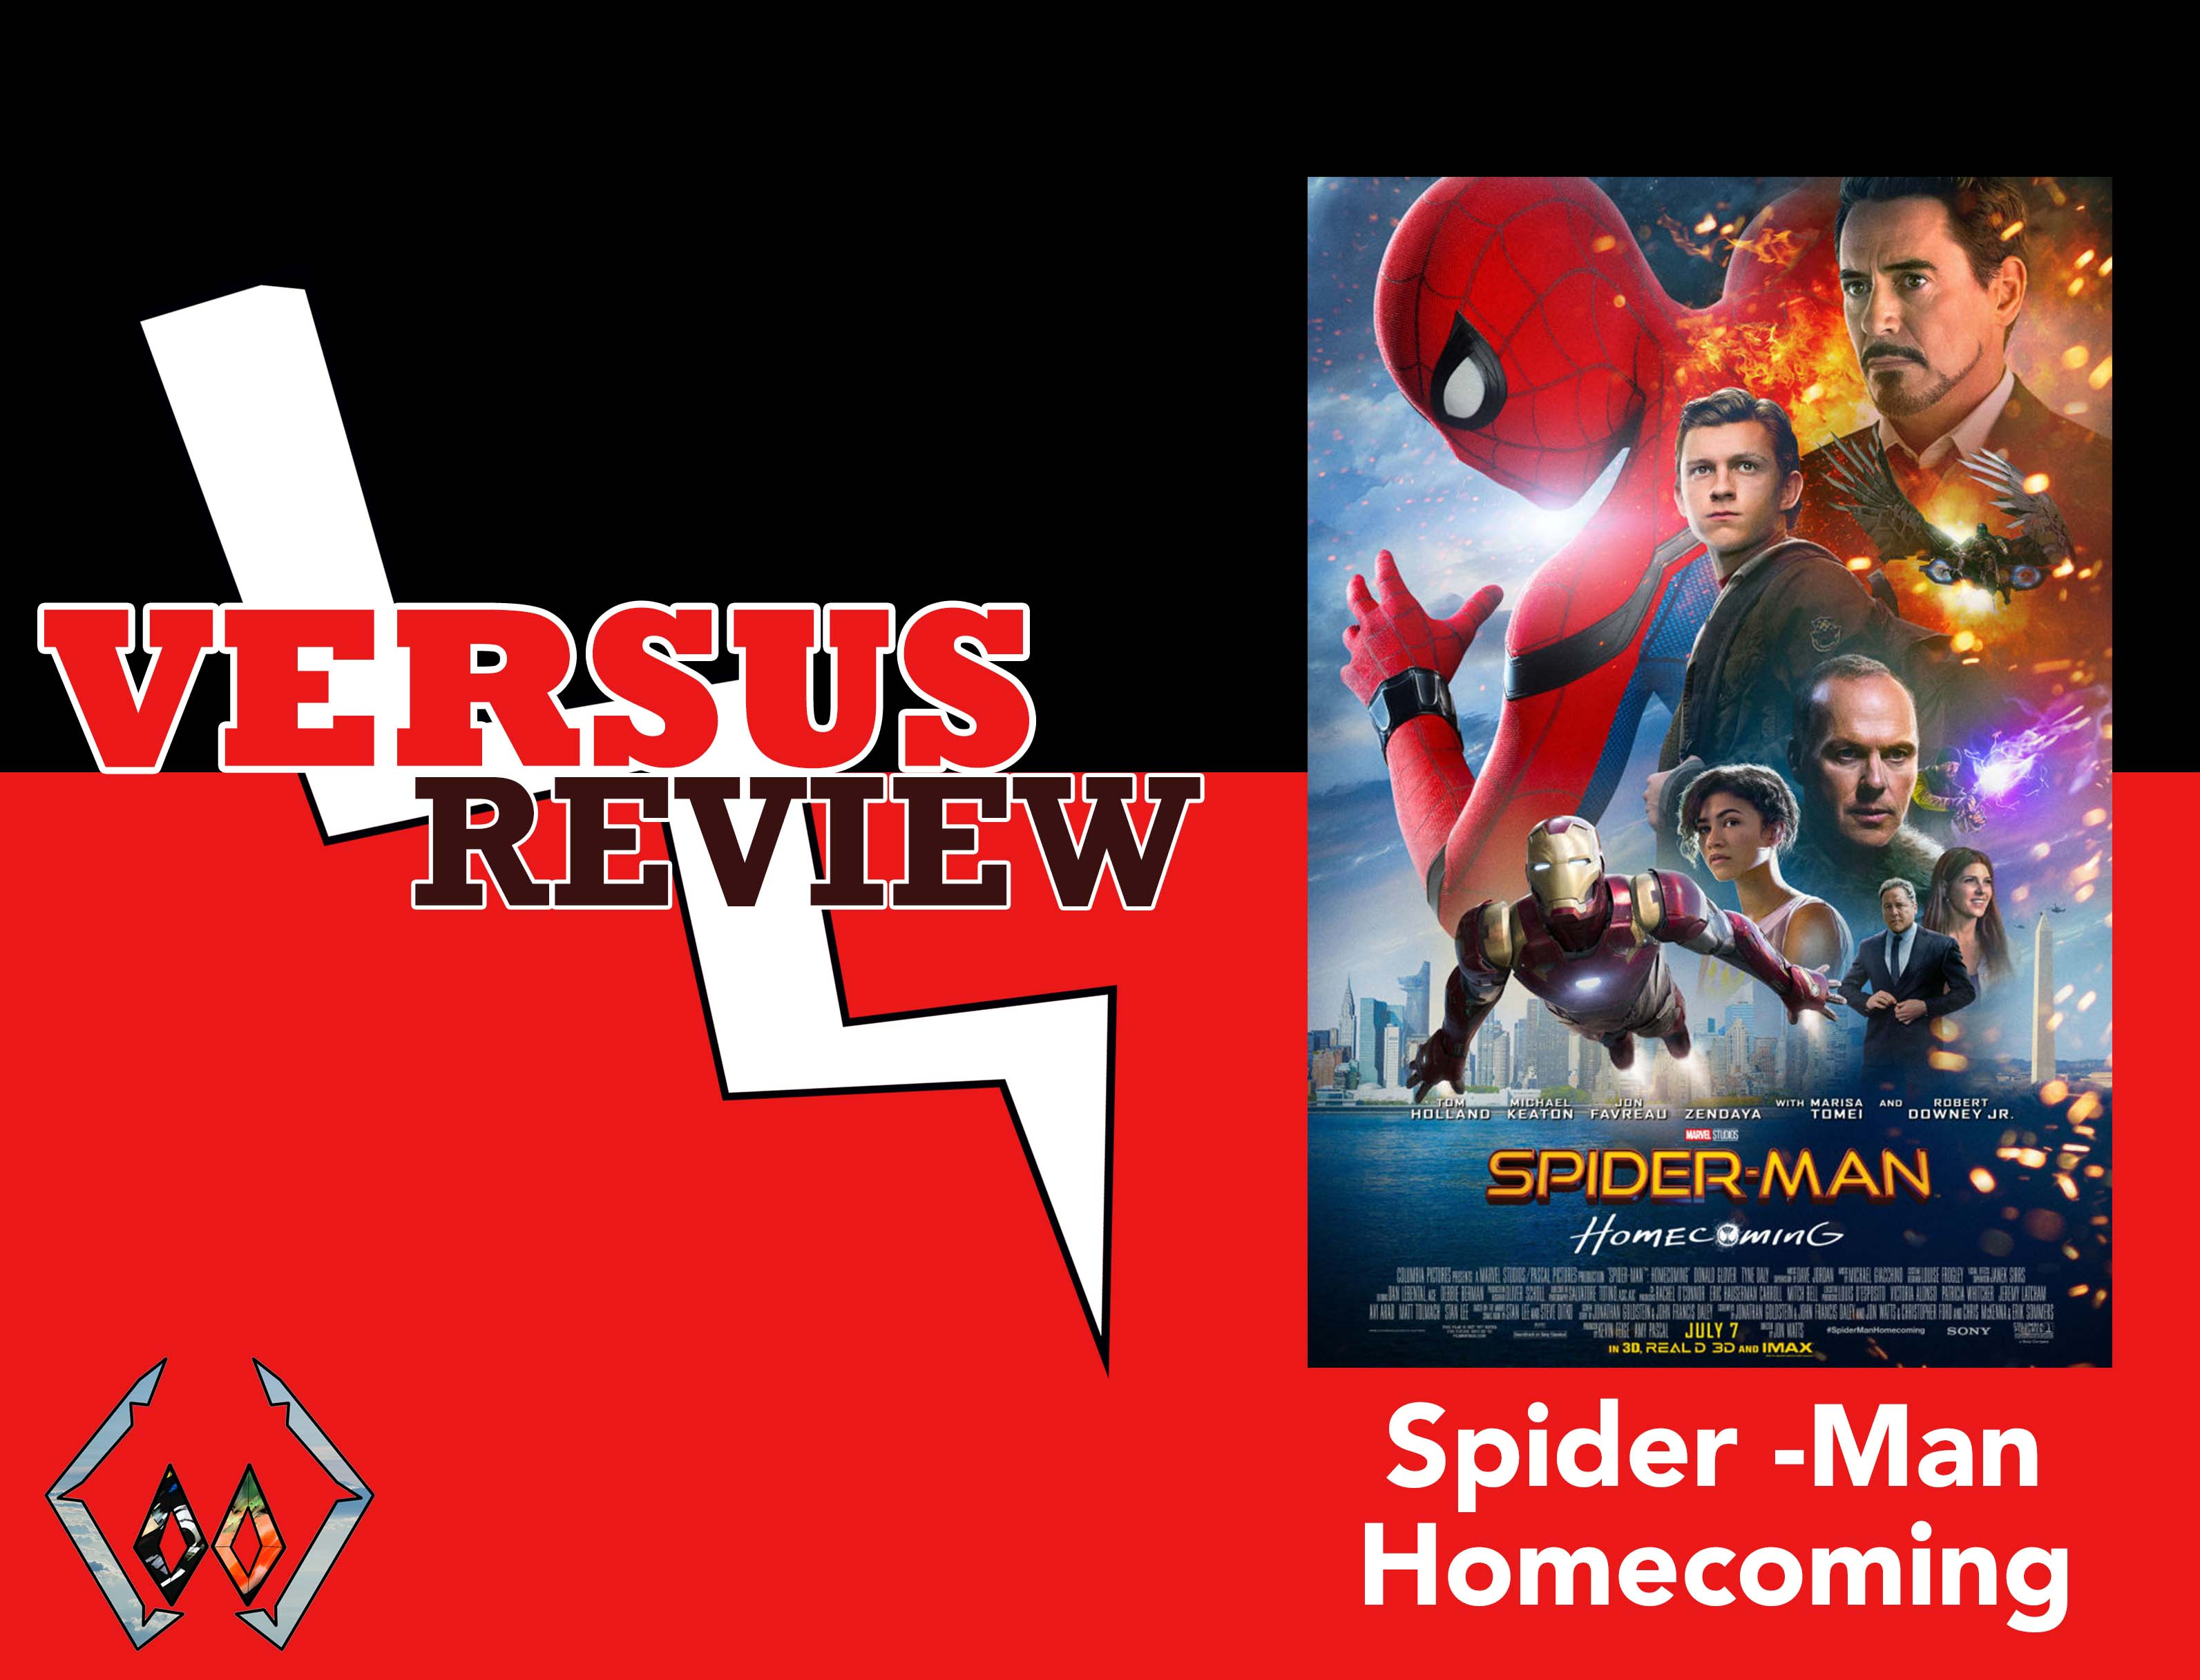 Spider-Man: Homecoming versus review post image